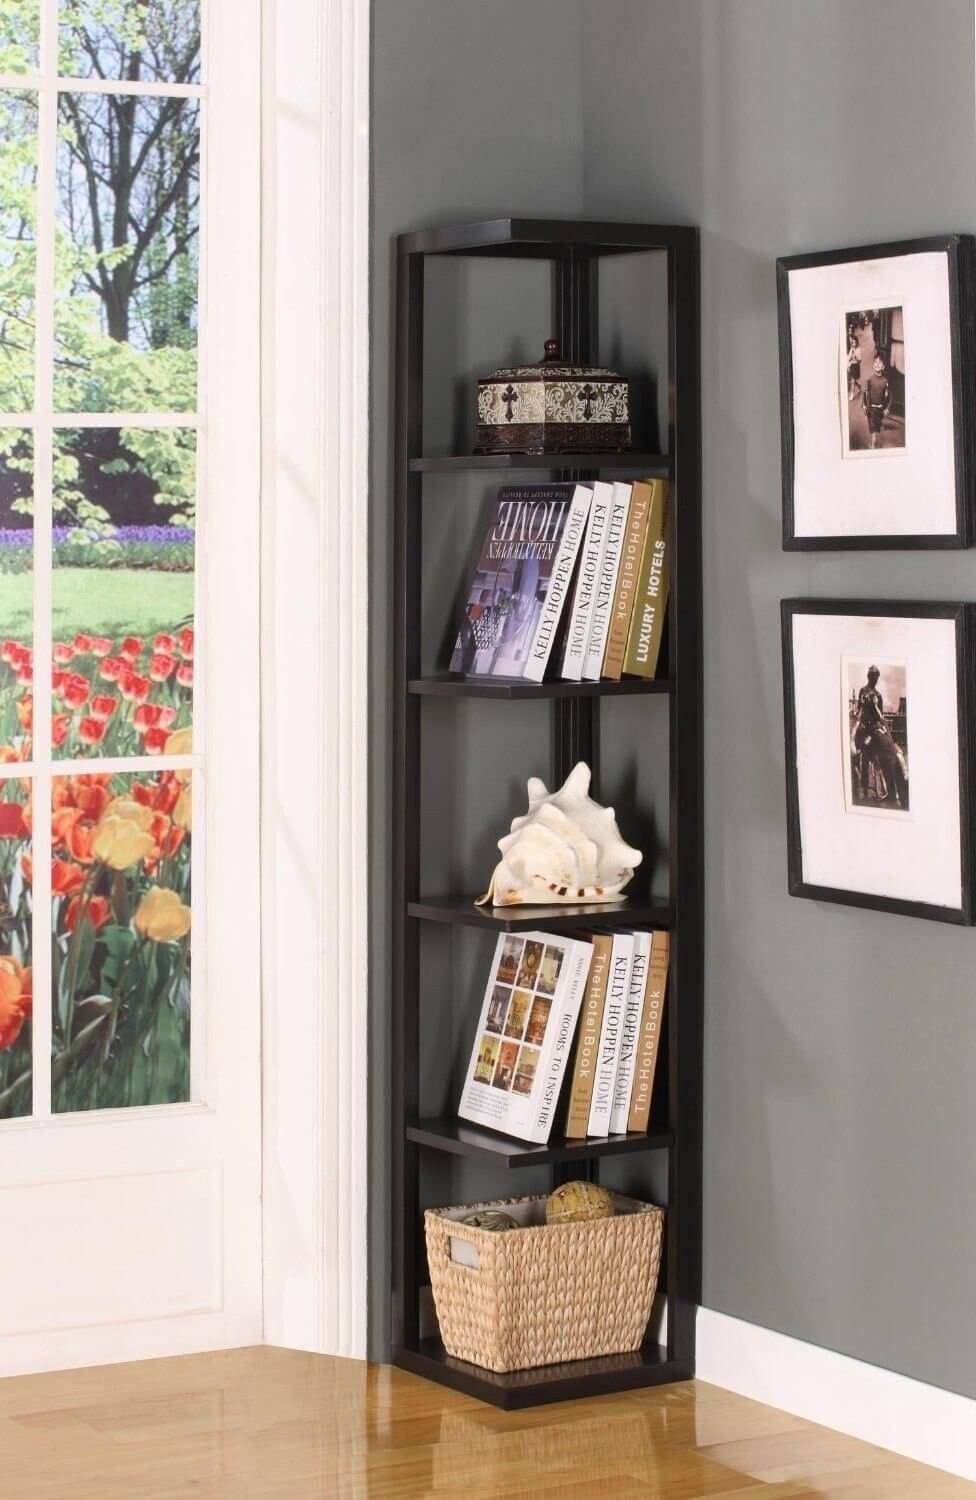 Of all the kinds of shelf units that one can get, corner shelves make the most out of limited and unused space. These are a great idea if you have unused corners and need a bit more storage space.